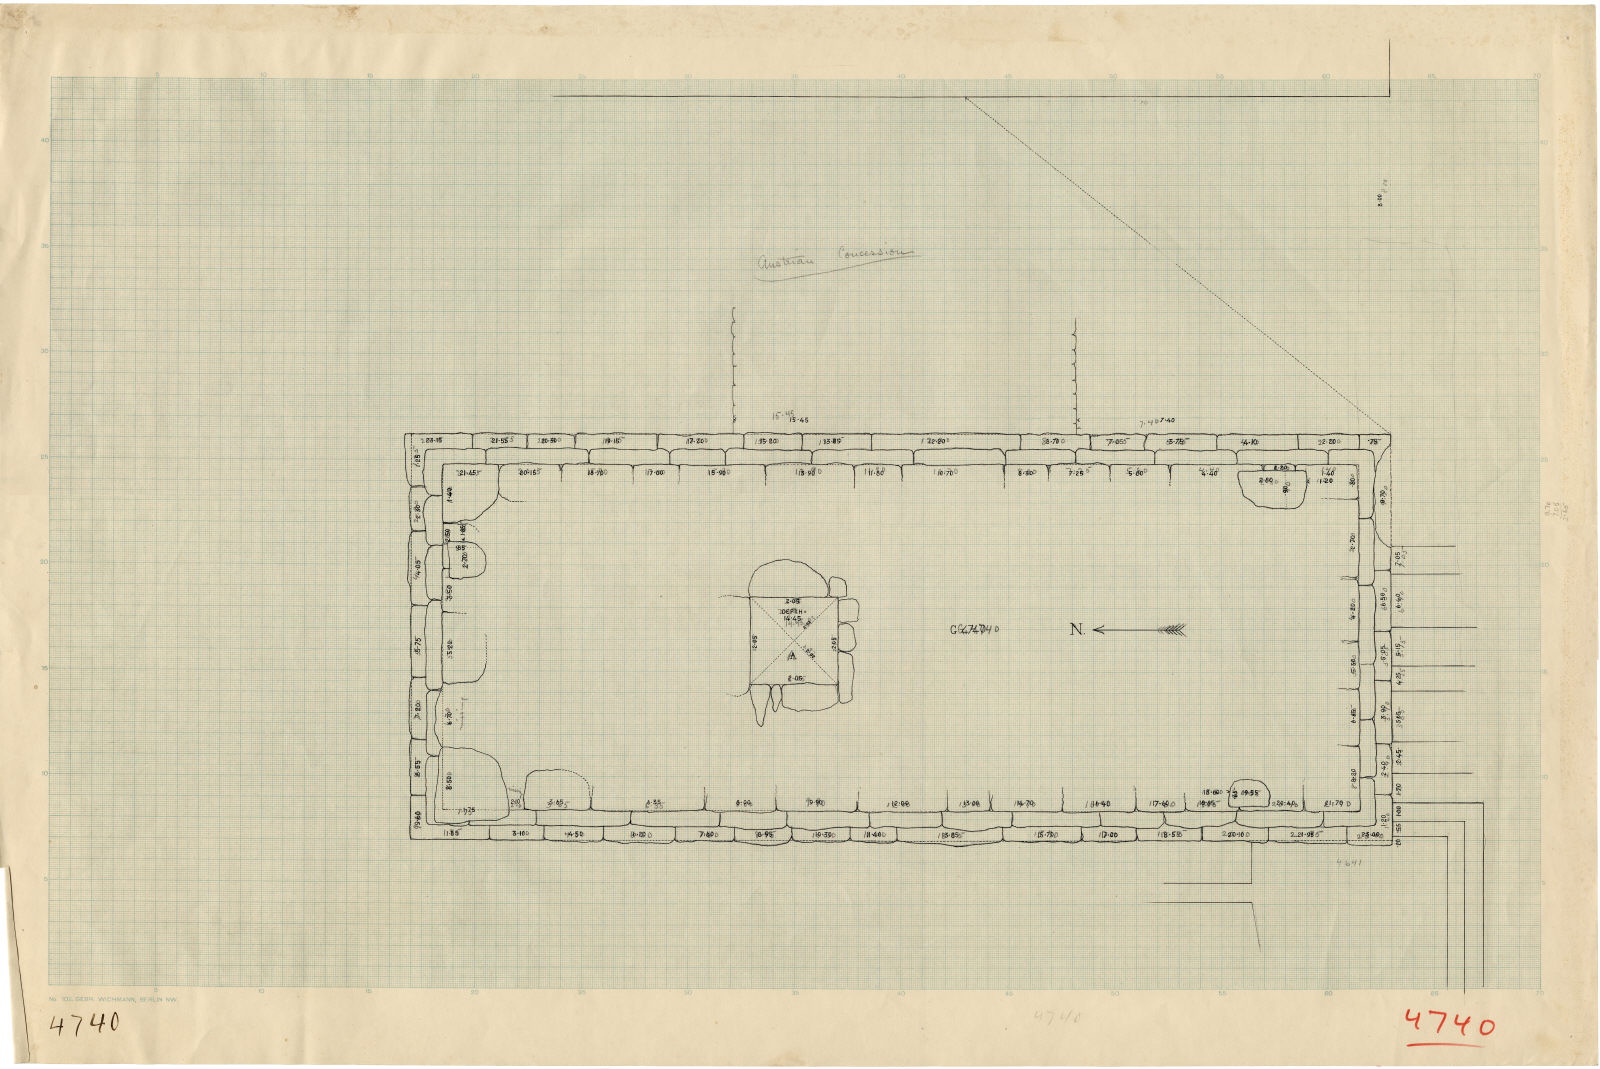 Maps and plans: G 4740, Plan